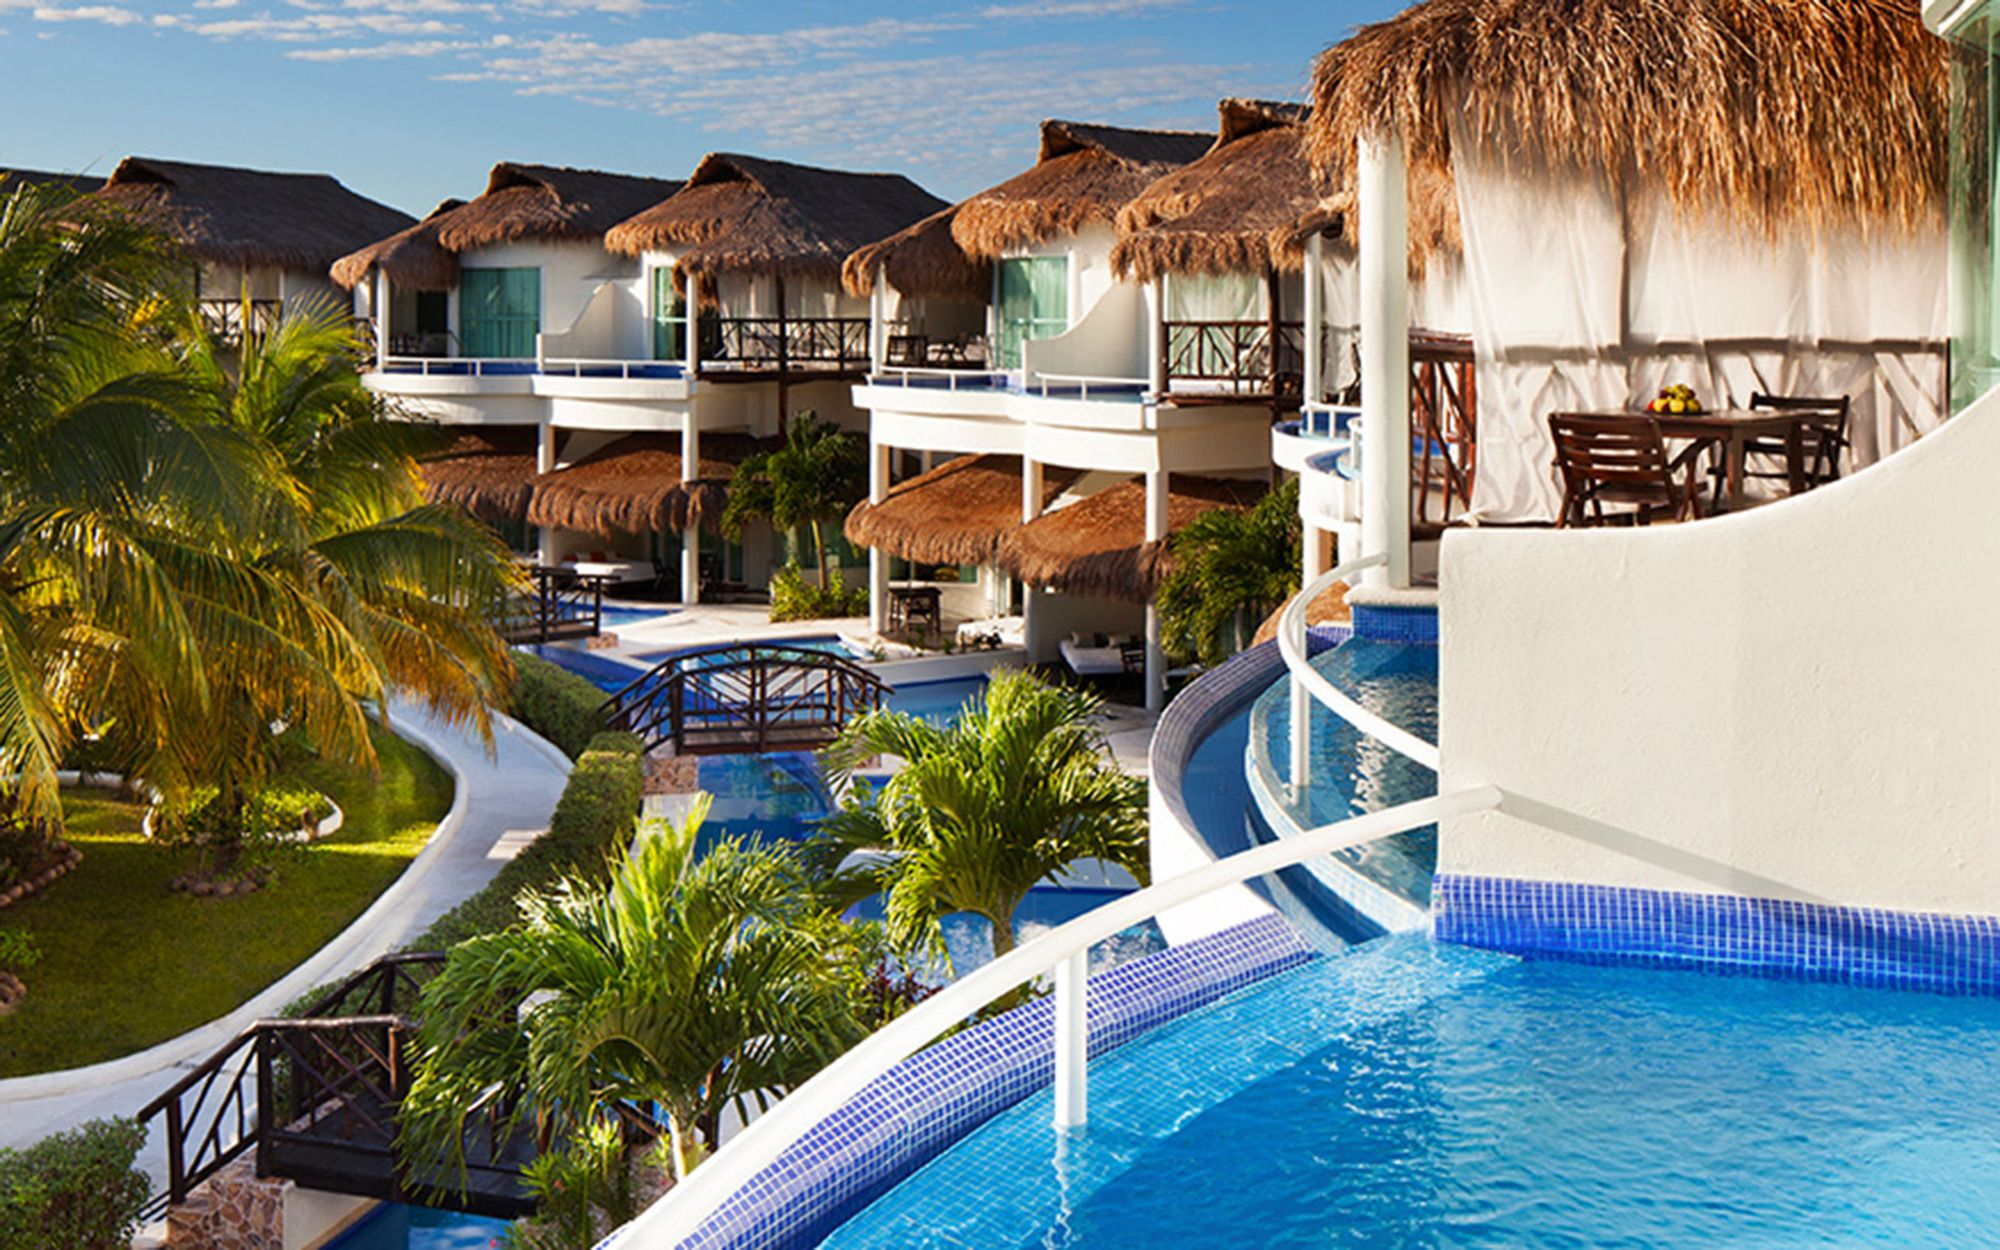 The 12 Best All-Inclusive Caribbean Resorts for Seniors